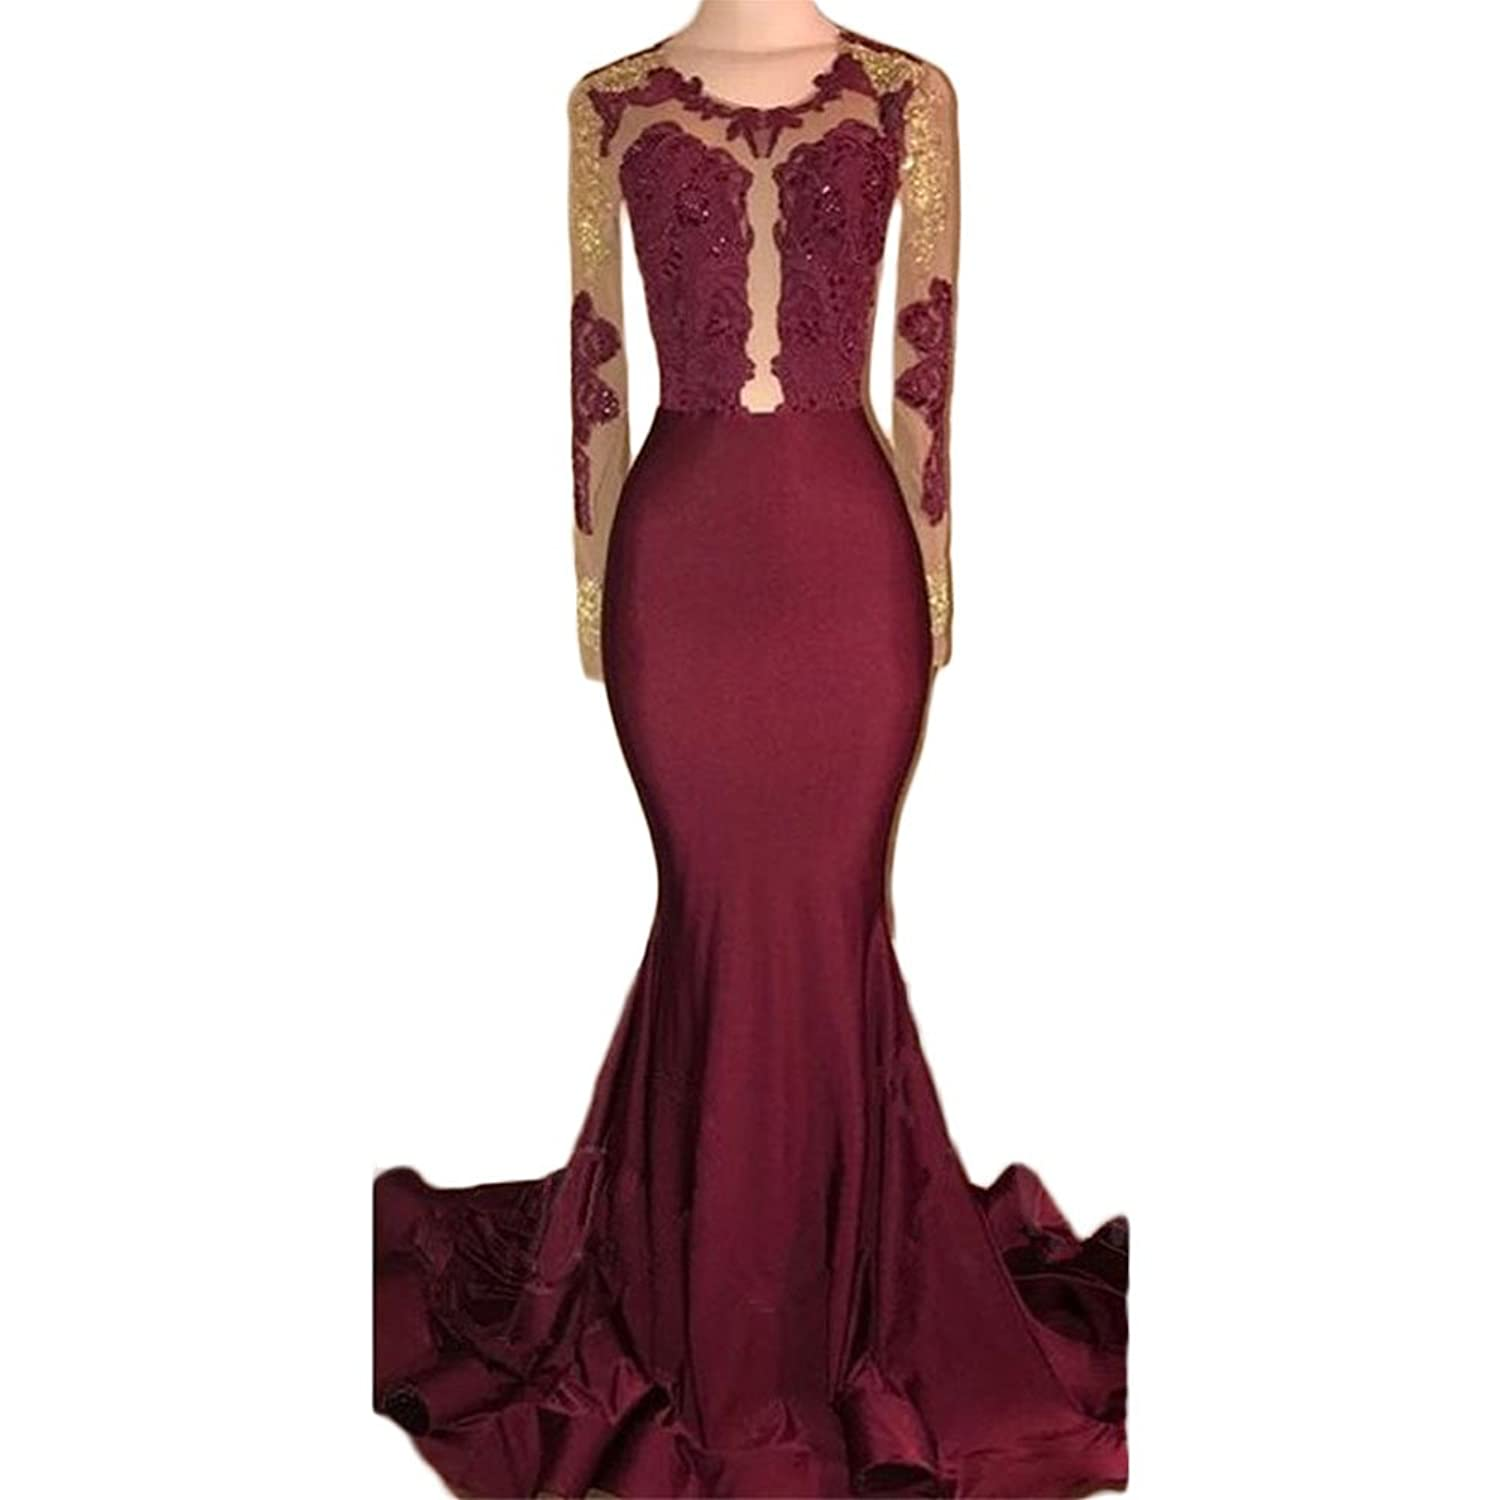 GoDressy Sexy Mermaid Burgundy Evening Gowns Long Sleeves Illusion Occassion Dresses at Amazon Womens Clothing store: